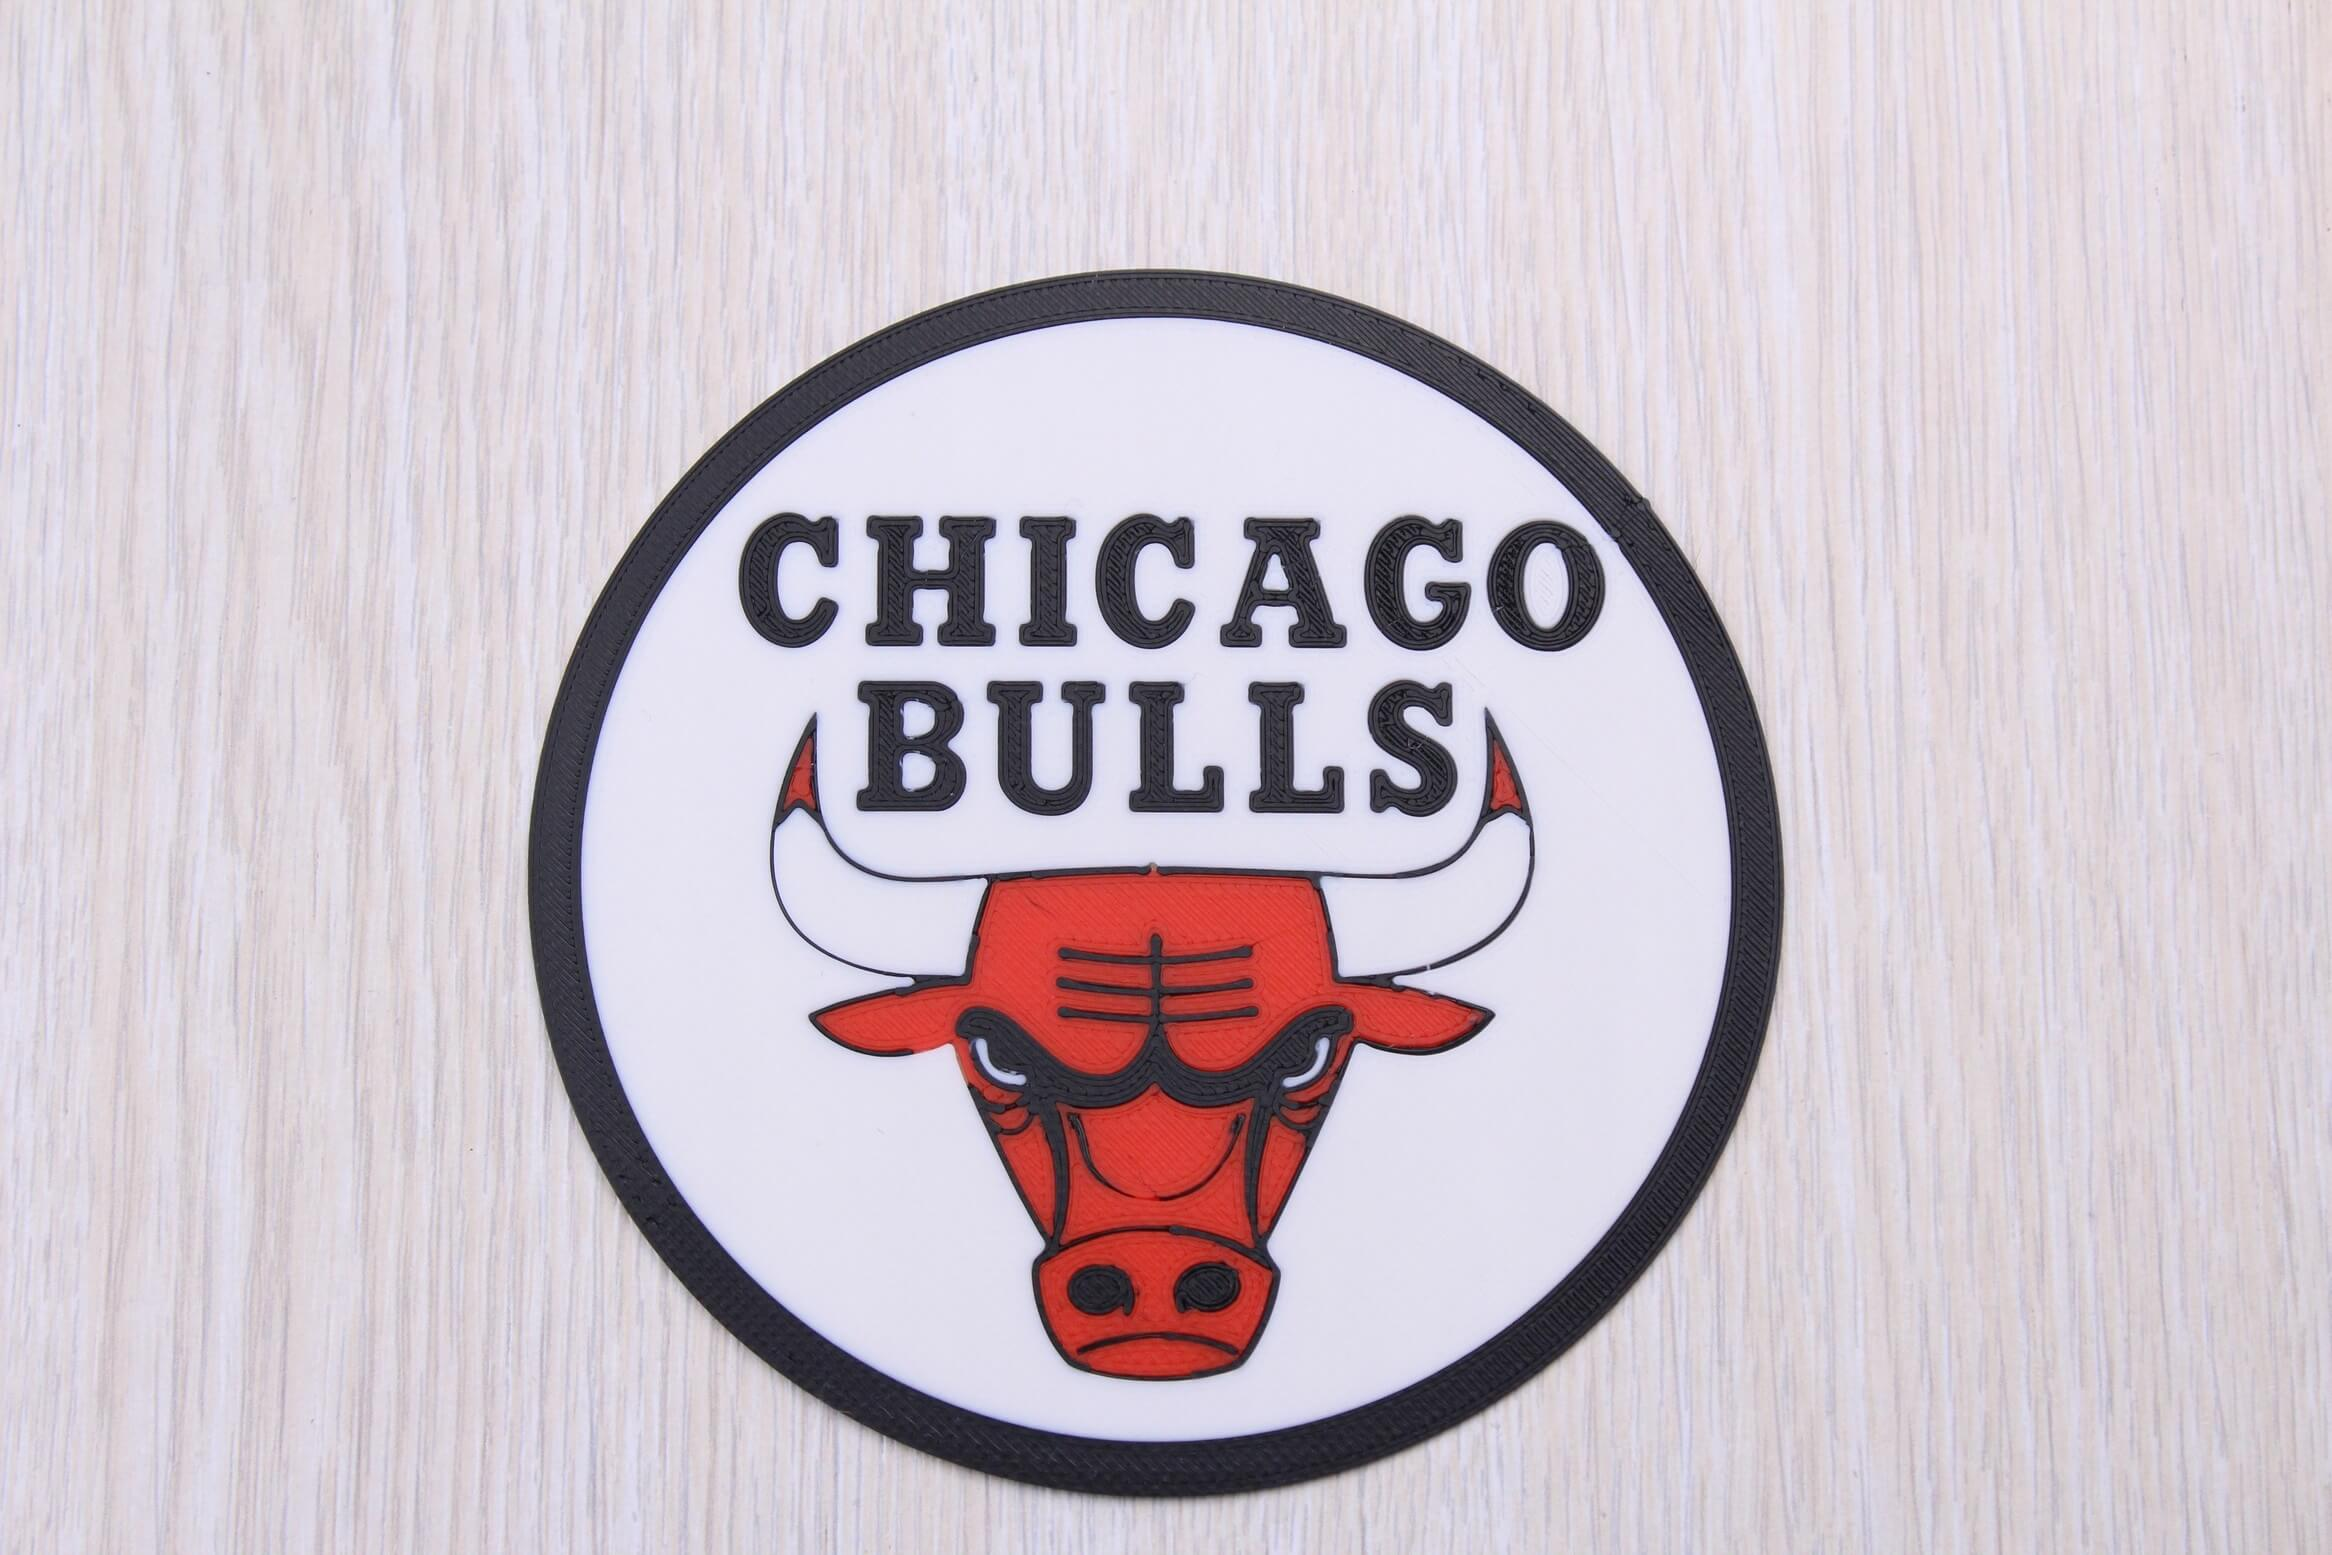 Chicago Bulls sign Multi Color 3D Print 3 | Multi-Color 3D Printing Using IdeaMaker